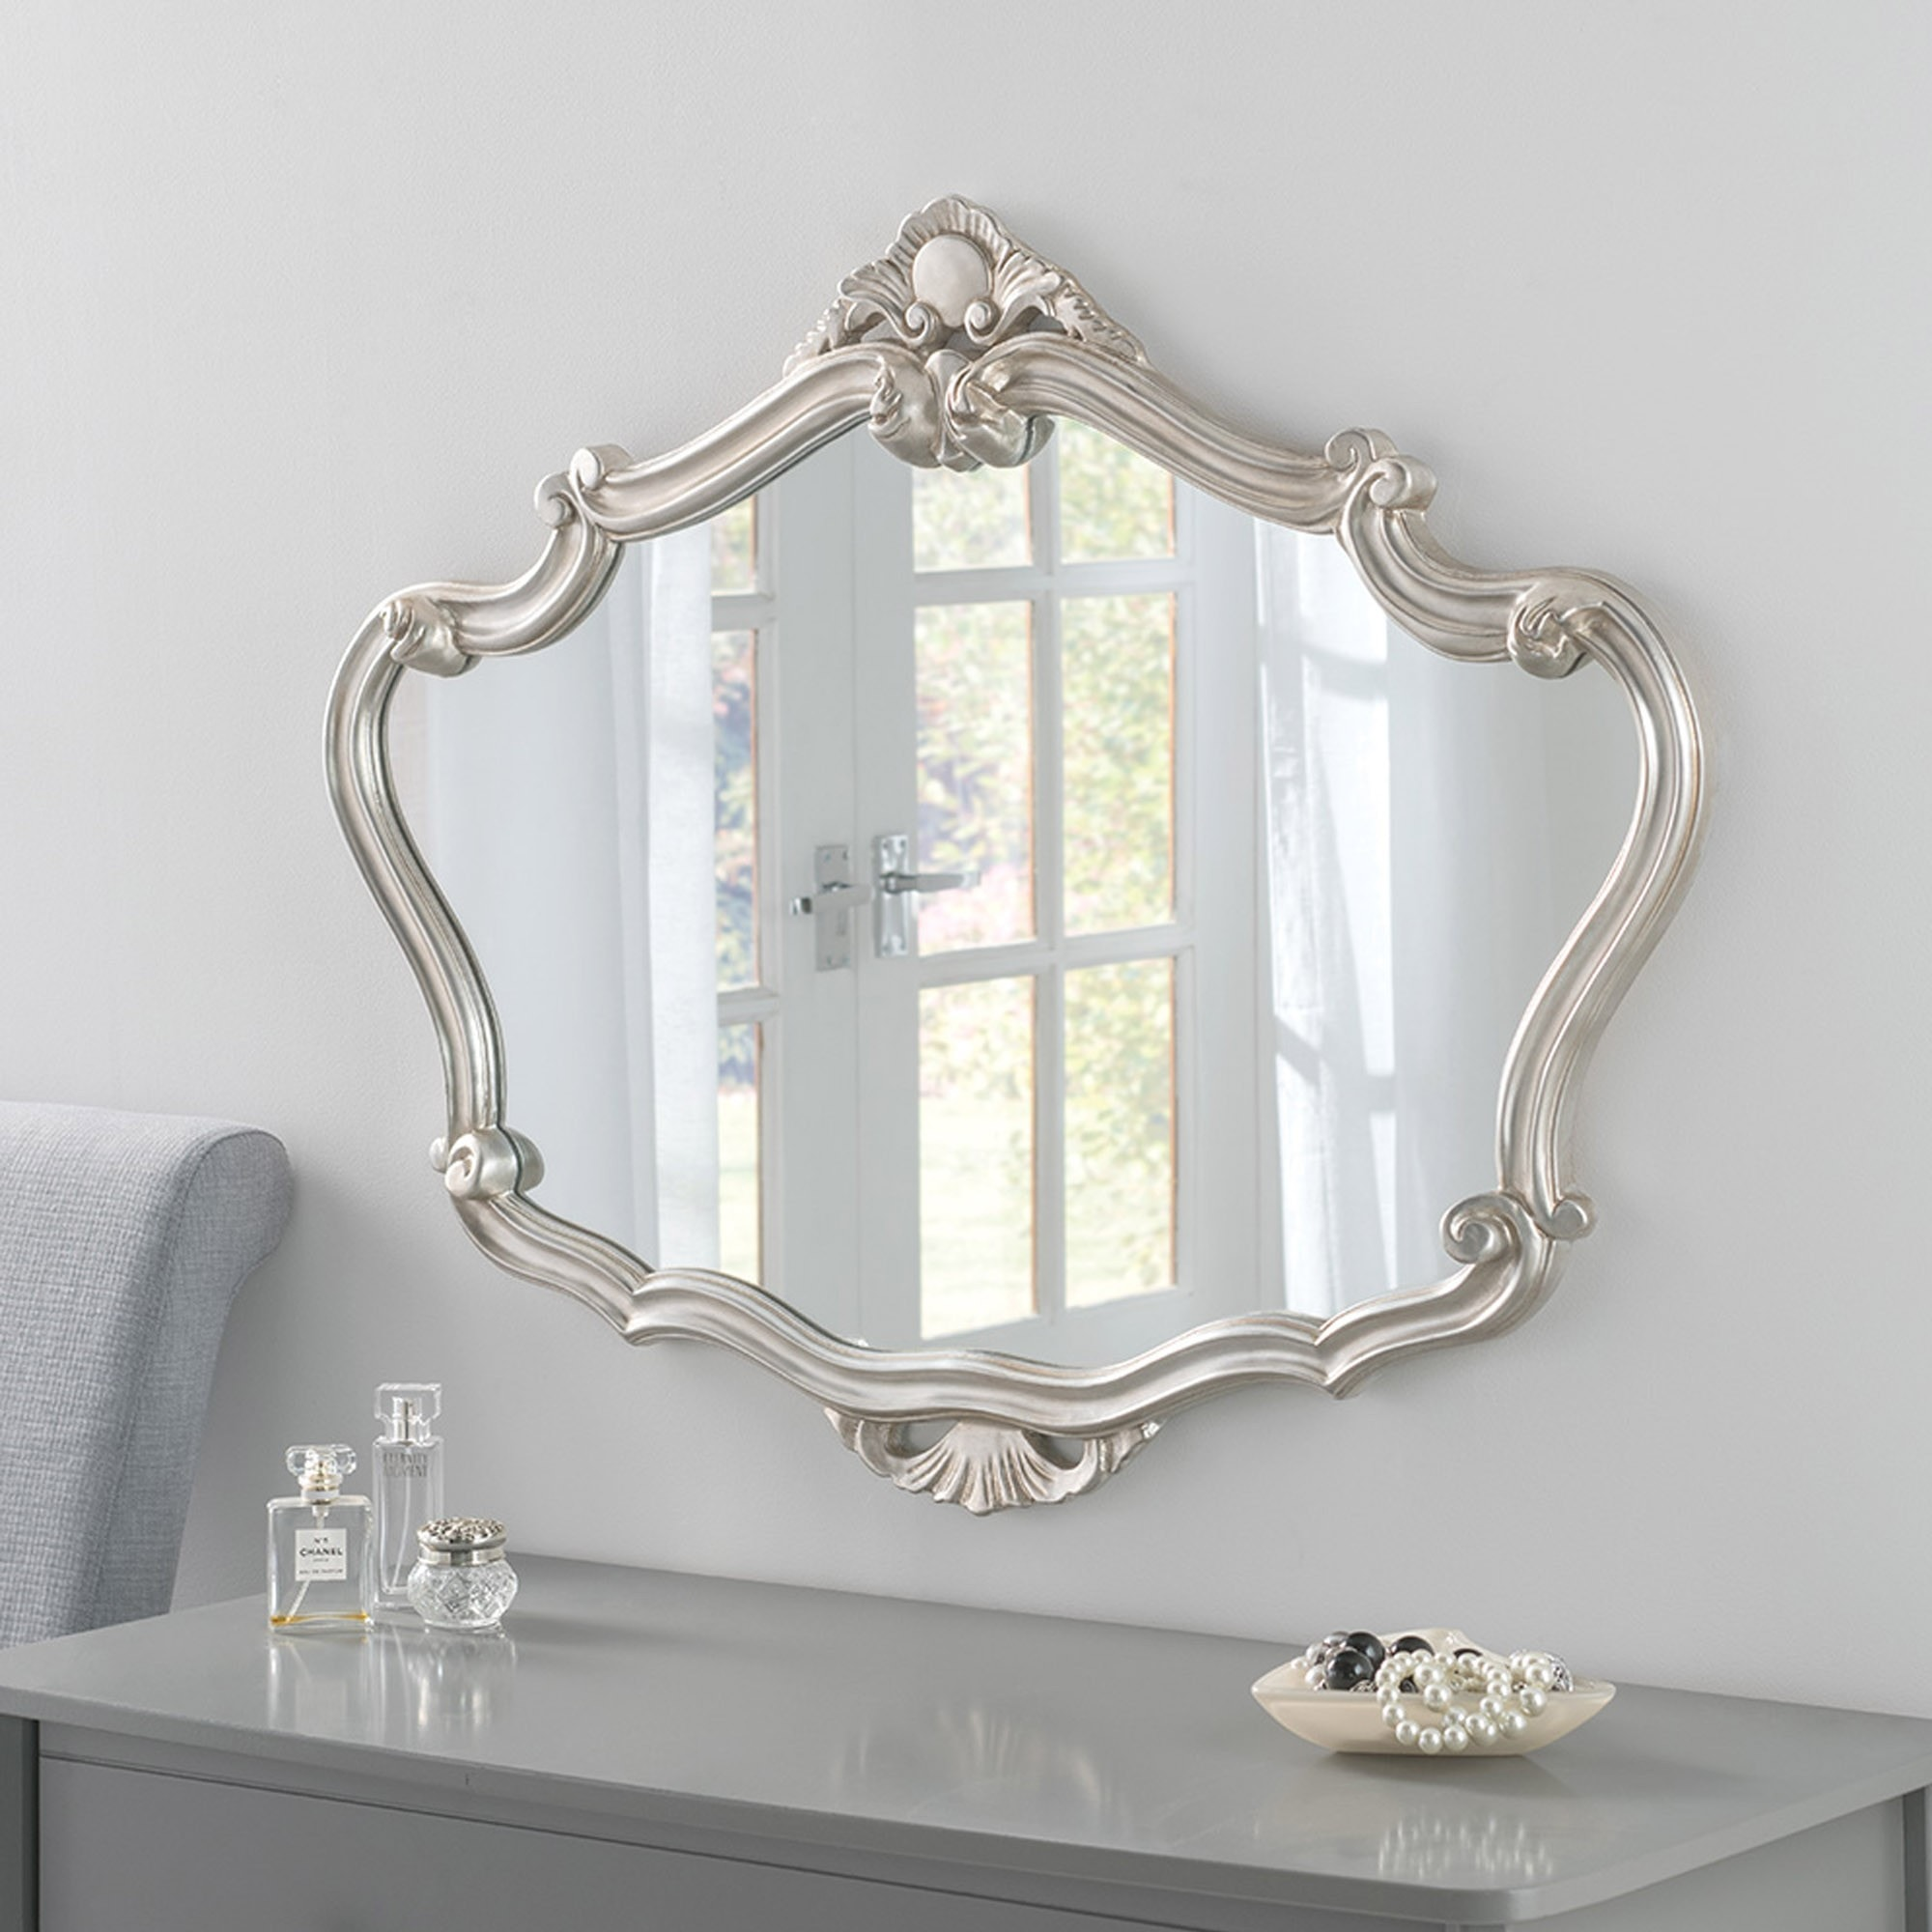 Silver Ornate Detailed Large Mirror Silver Ornate Mirror